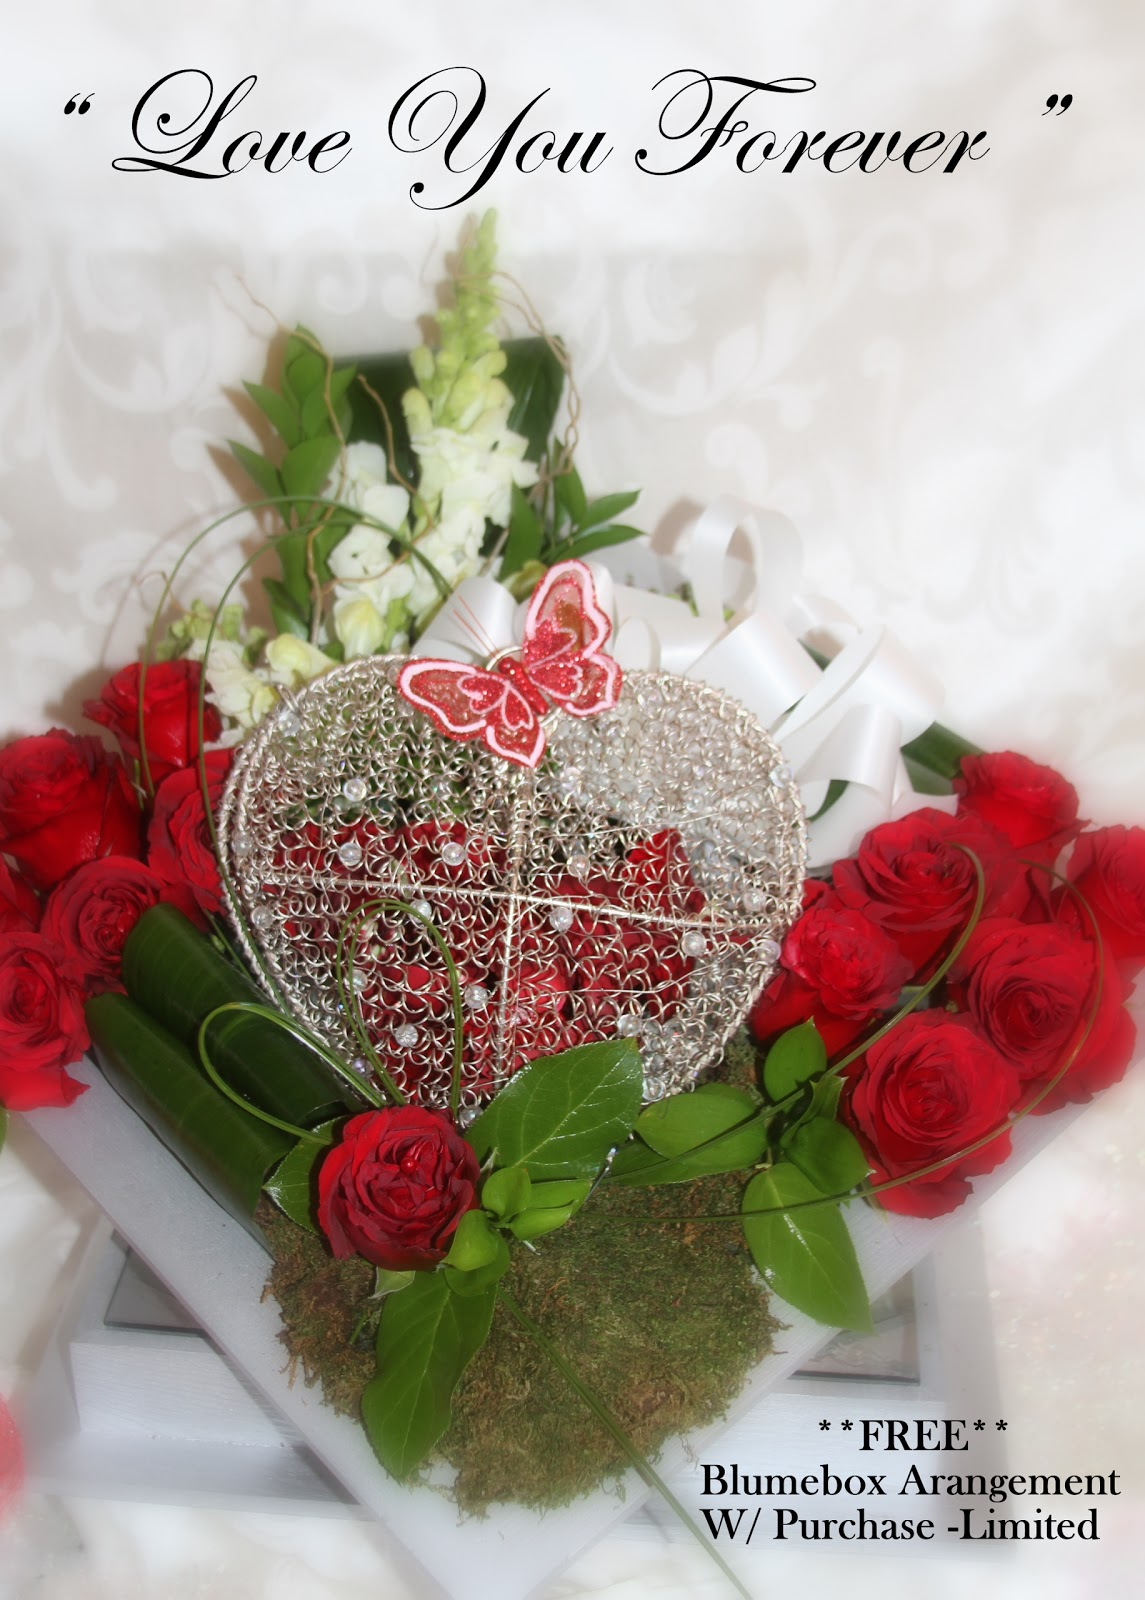 Love You Forever Trendee Flowers Designs